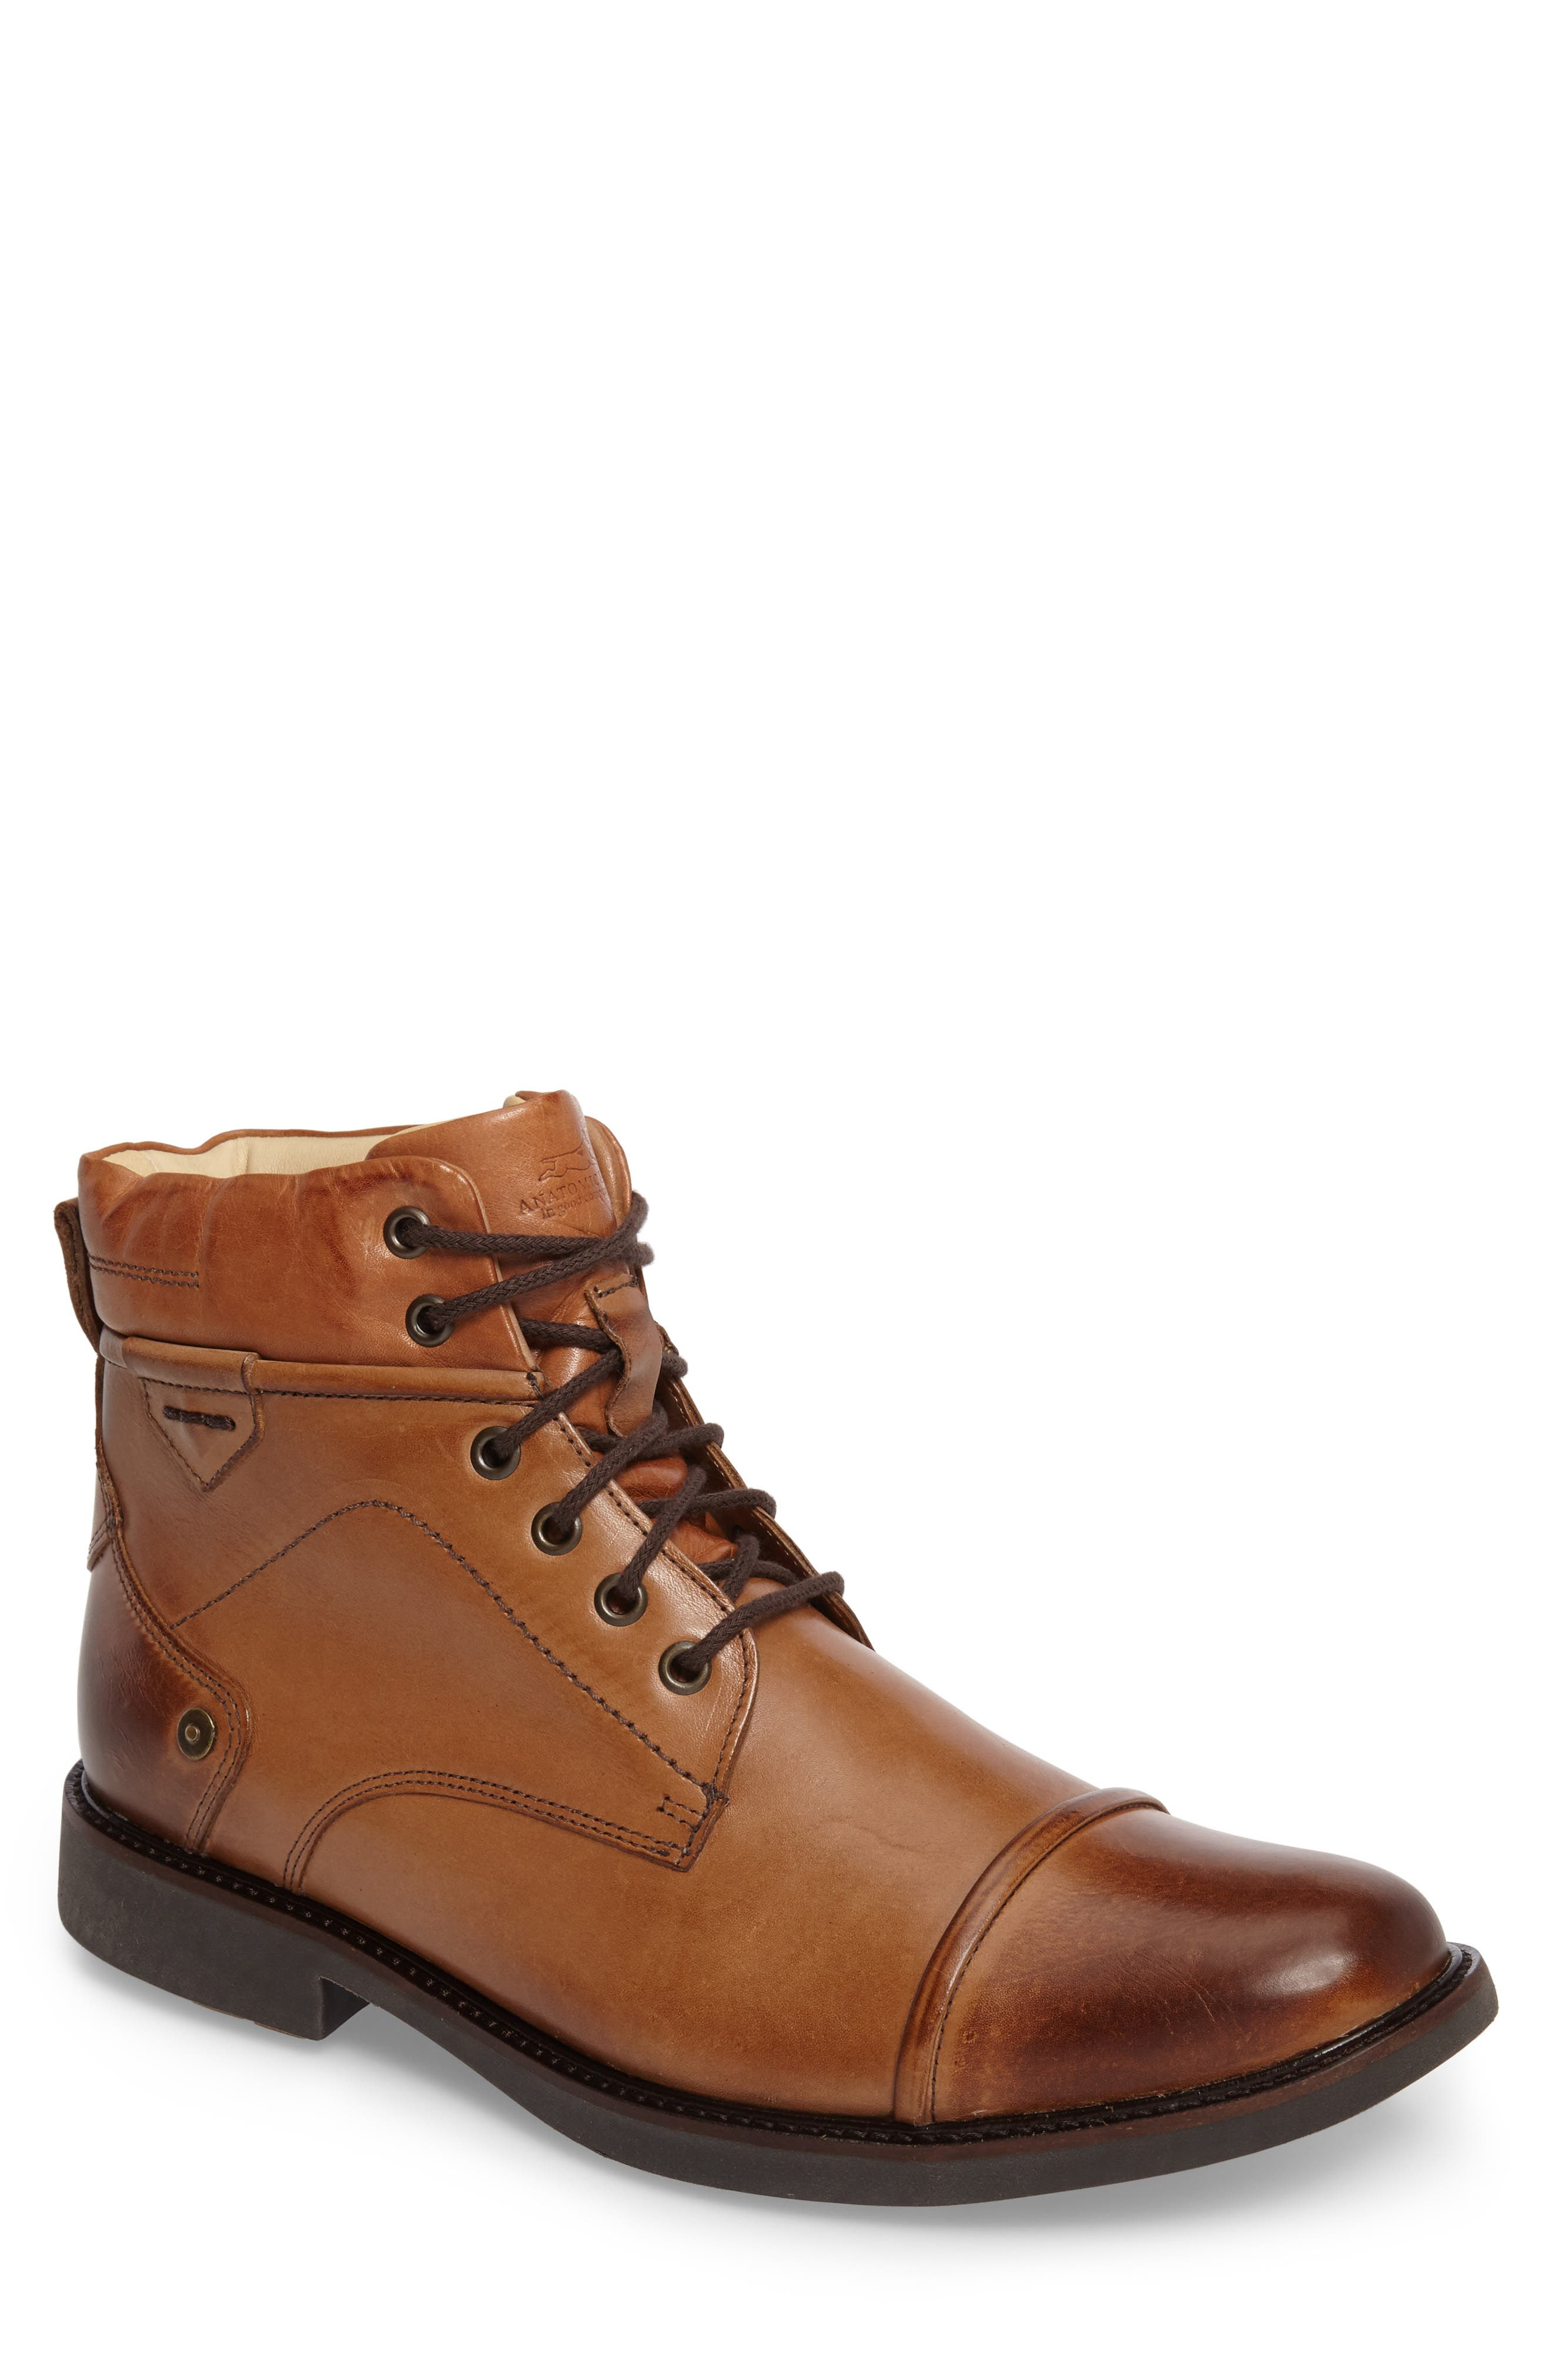 Samuel Cap Toe Boot,                             Main thumbnail 1, color,                             Touch Bronze Foxy